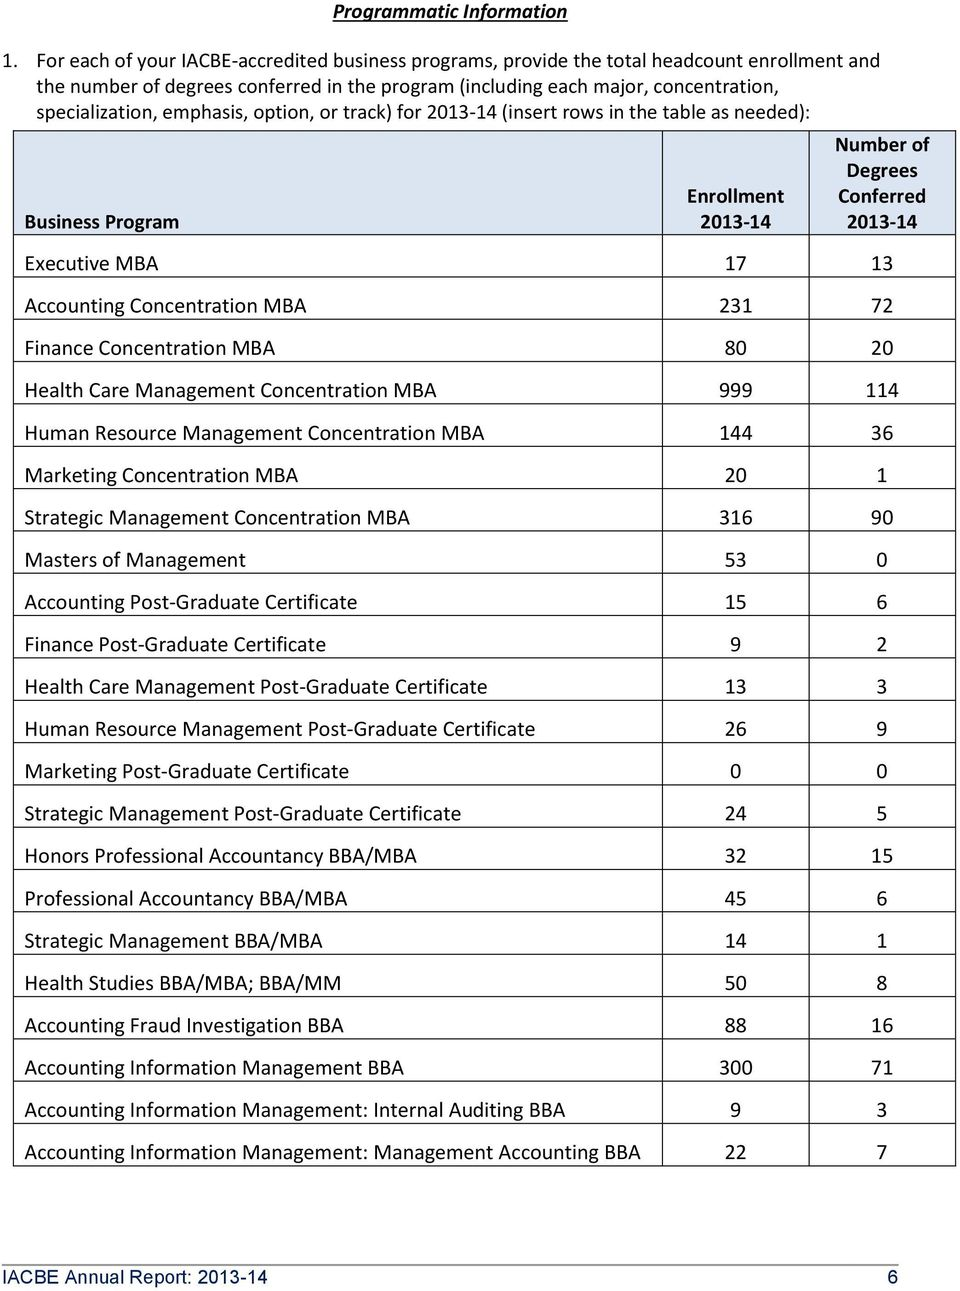 emphasis, option, or track) for 2013-14 (insert rows in the table as needed): Business Program Enrollment 2013-14 Number of Degrees Conferred 2013-14 Executive MBA 17 13 Accounting Concentration MBA